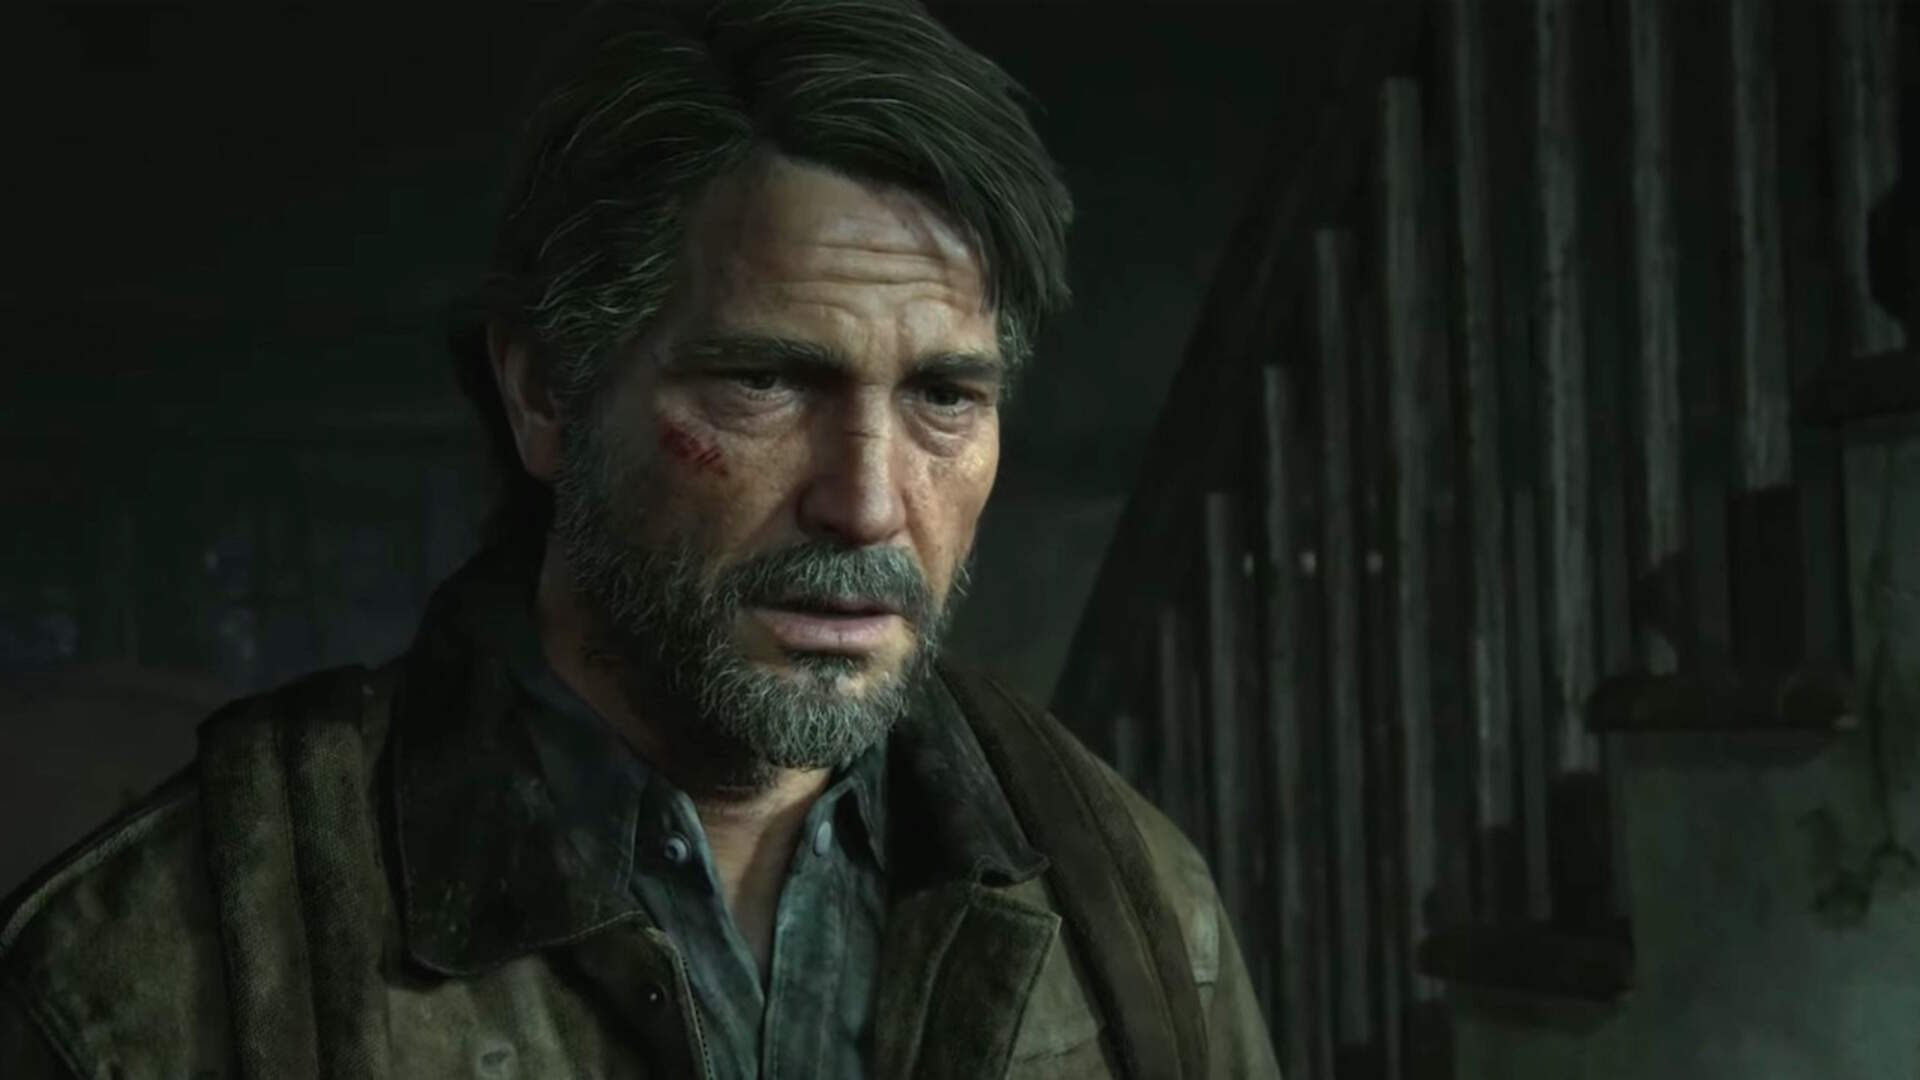 The Last of Us 2 Release Date, Ellie Edition, Gameplay - Everything We Know